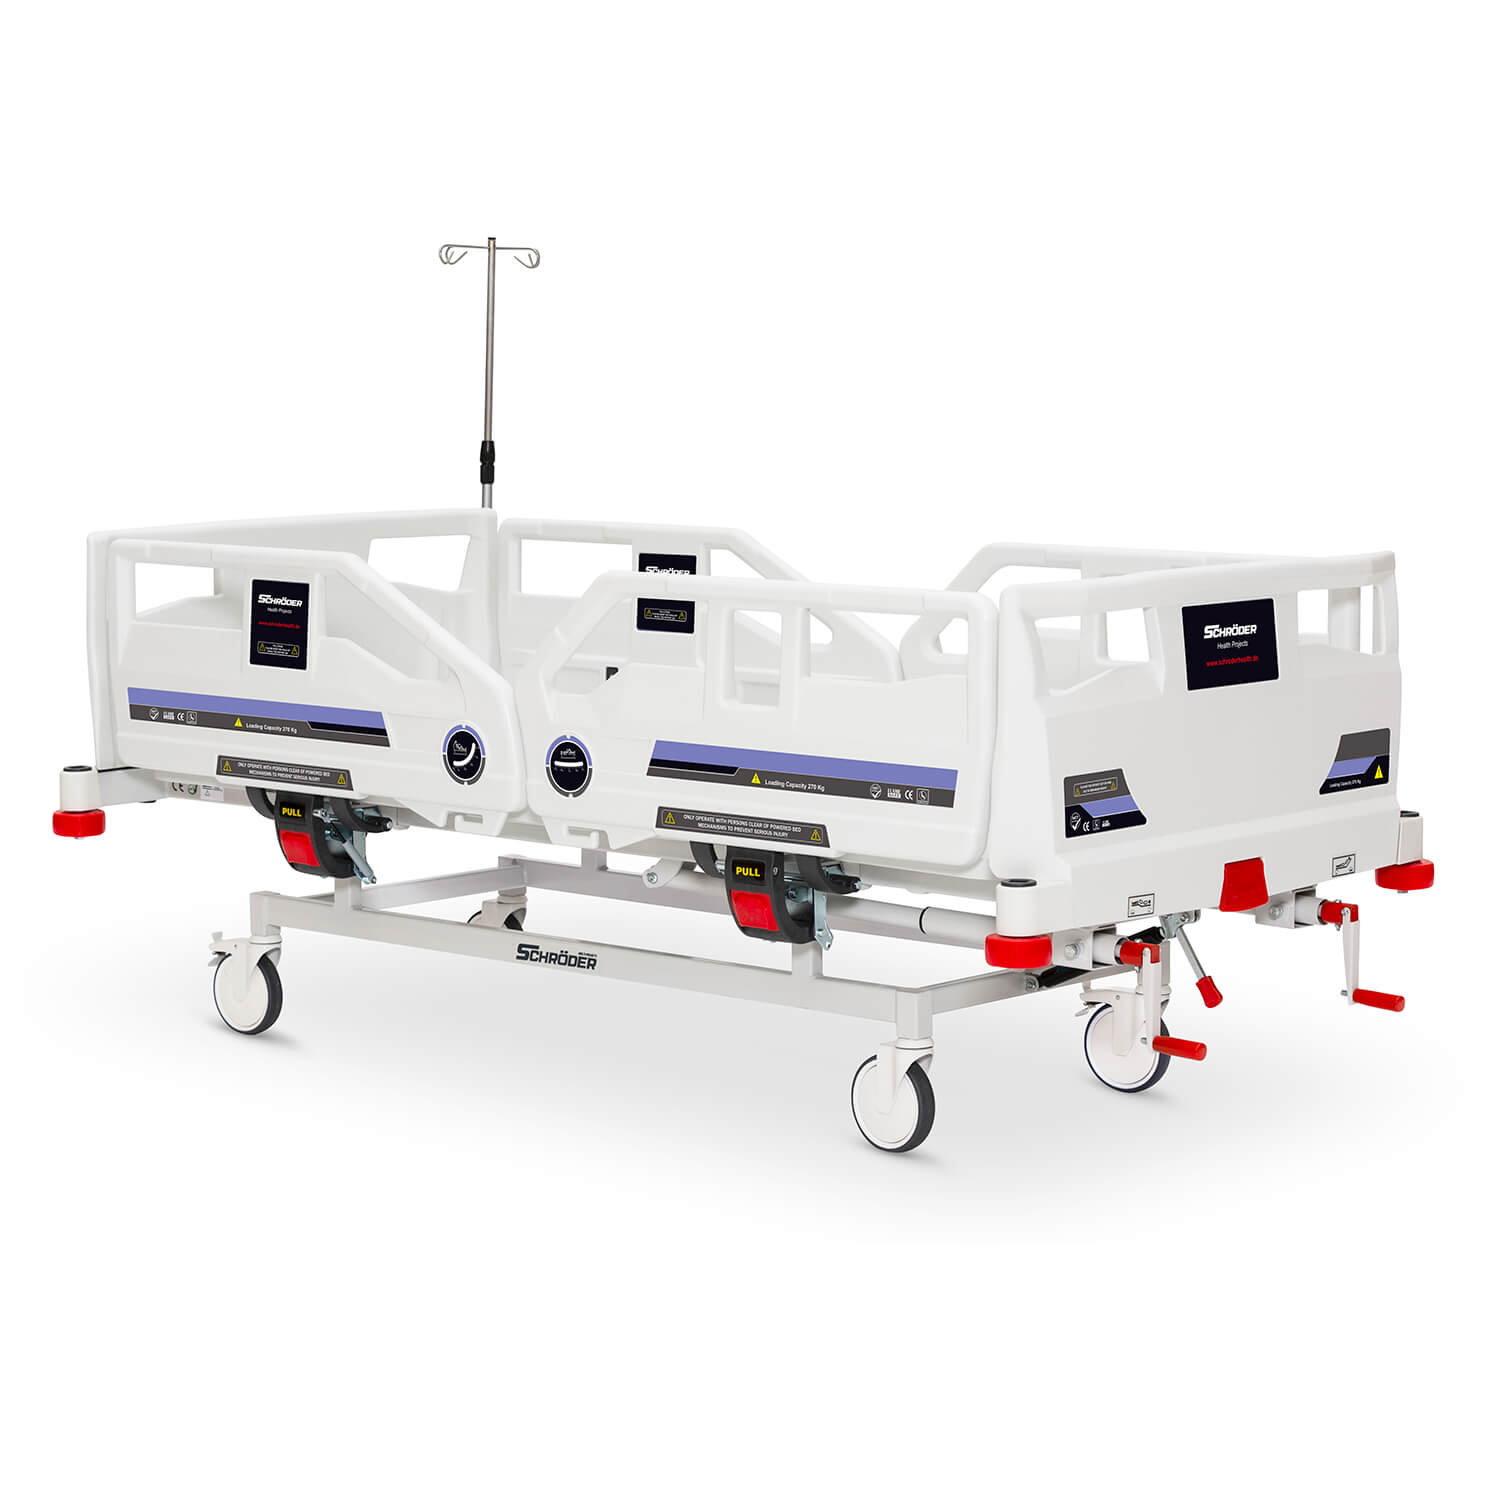 Plastic Mechanical Operated Hospital Bed, 2 Cranks